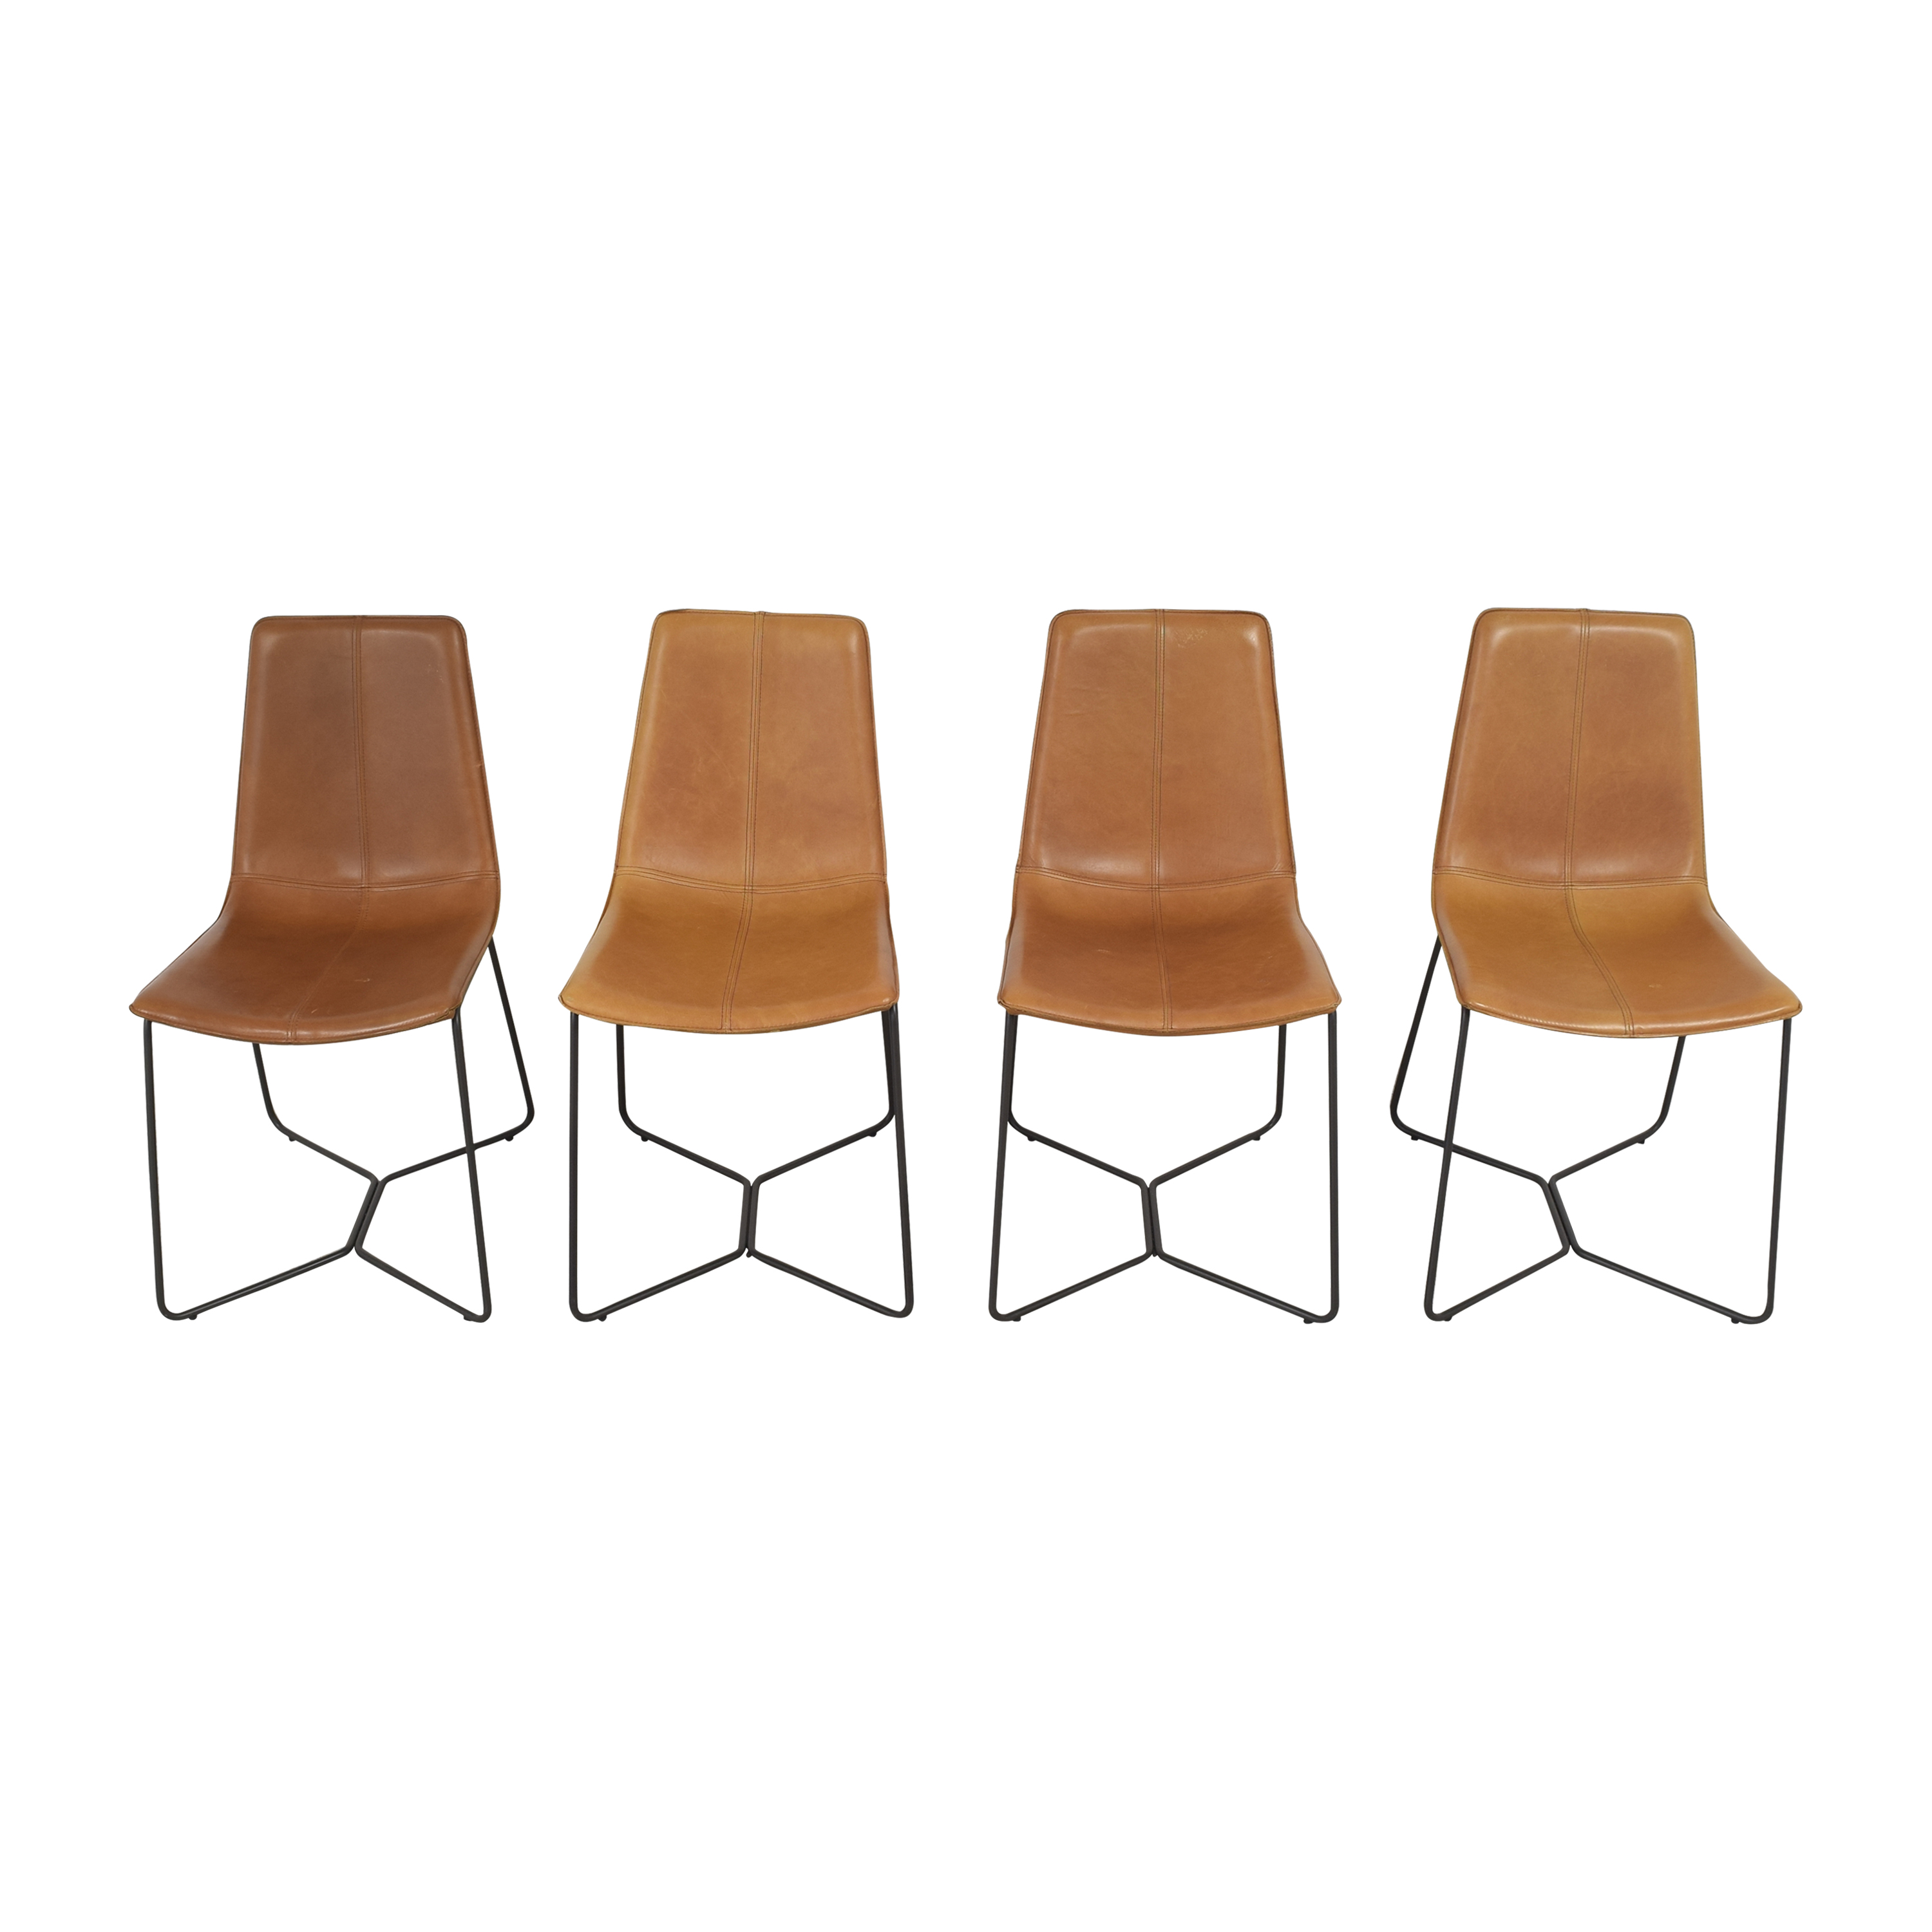 West Elm West Elm Slope Dining Chairs nyc